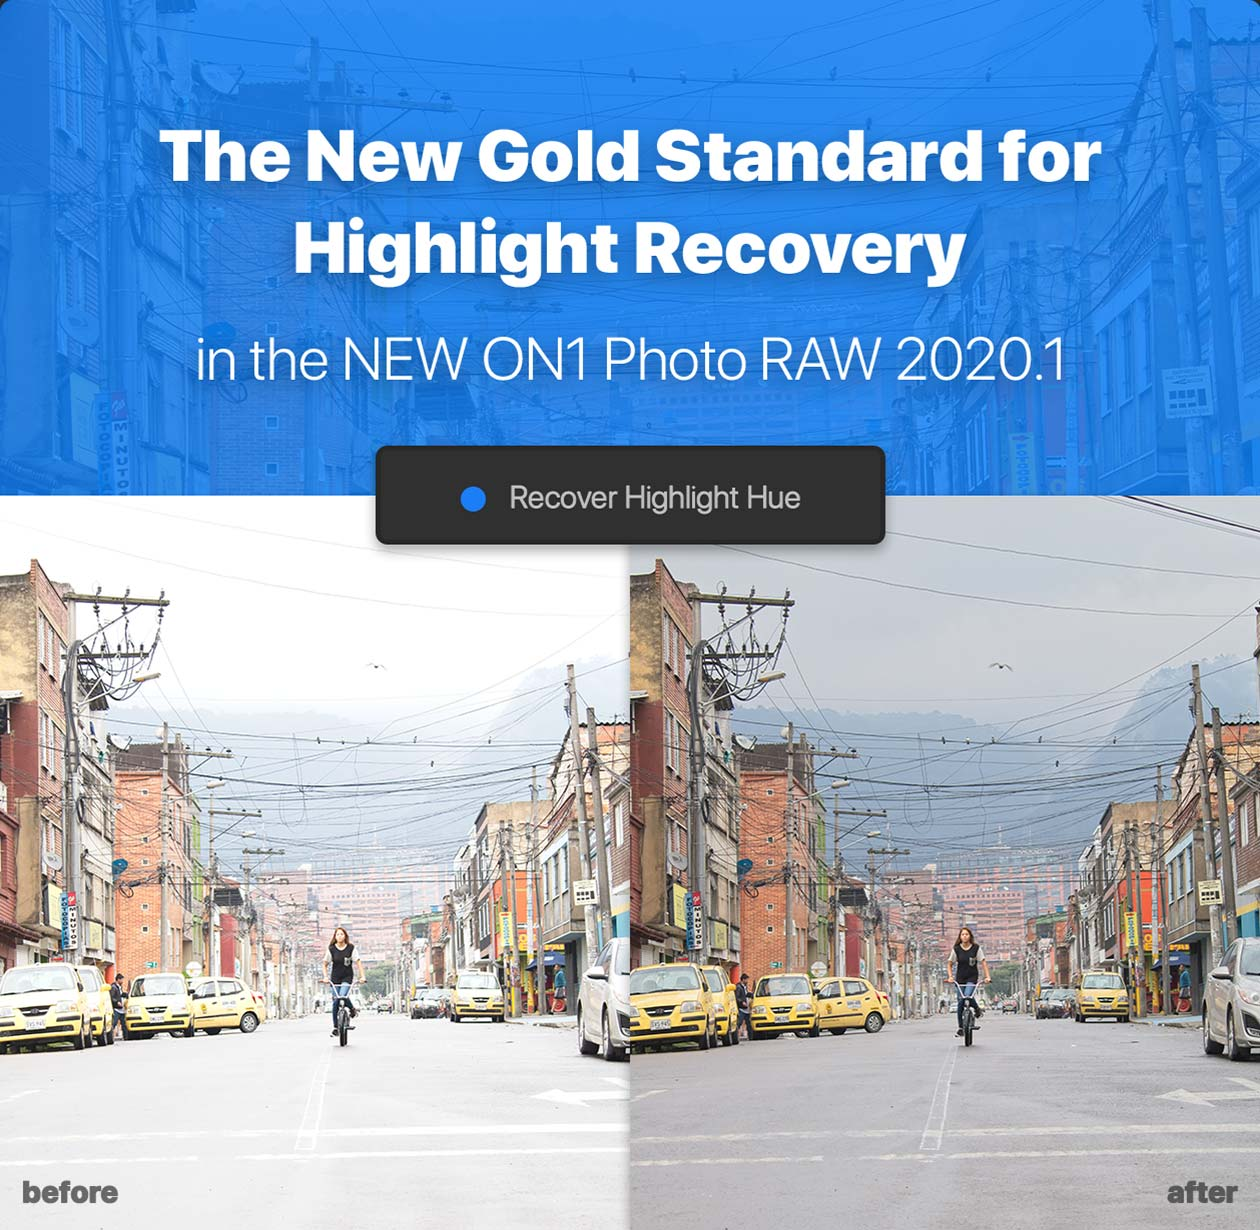 The New Gold Standard for Highlight Recovery - ON1 Photo RAW 2020.1